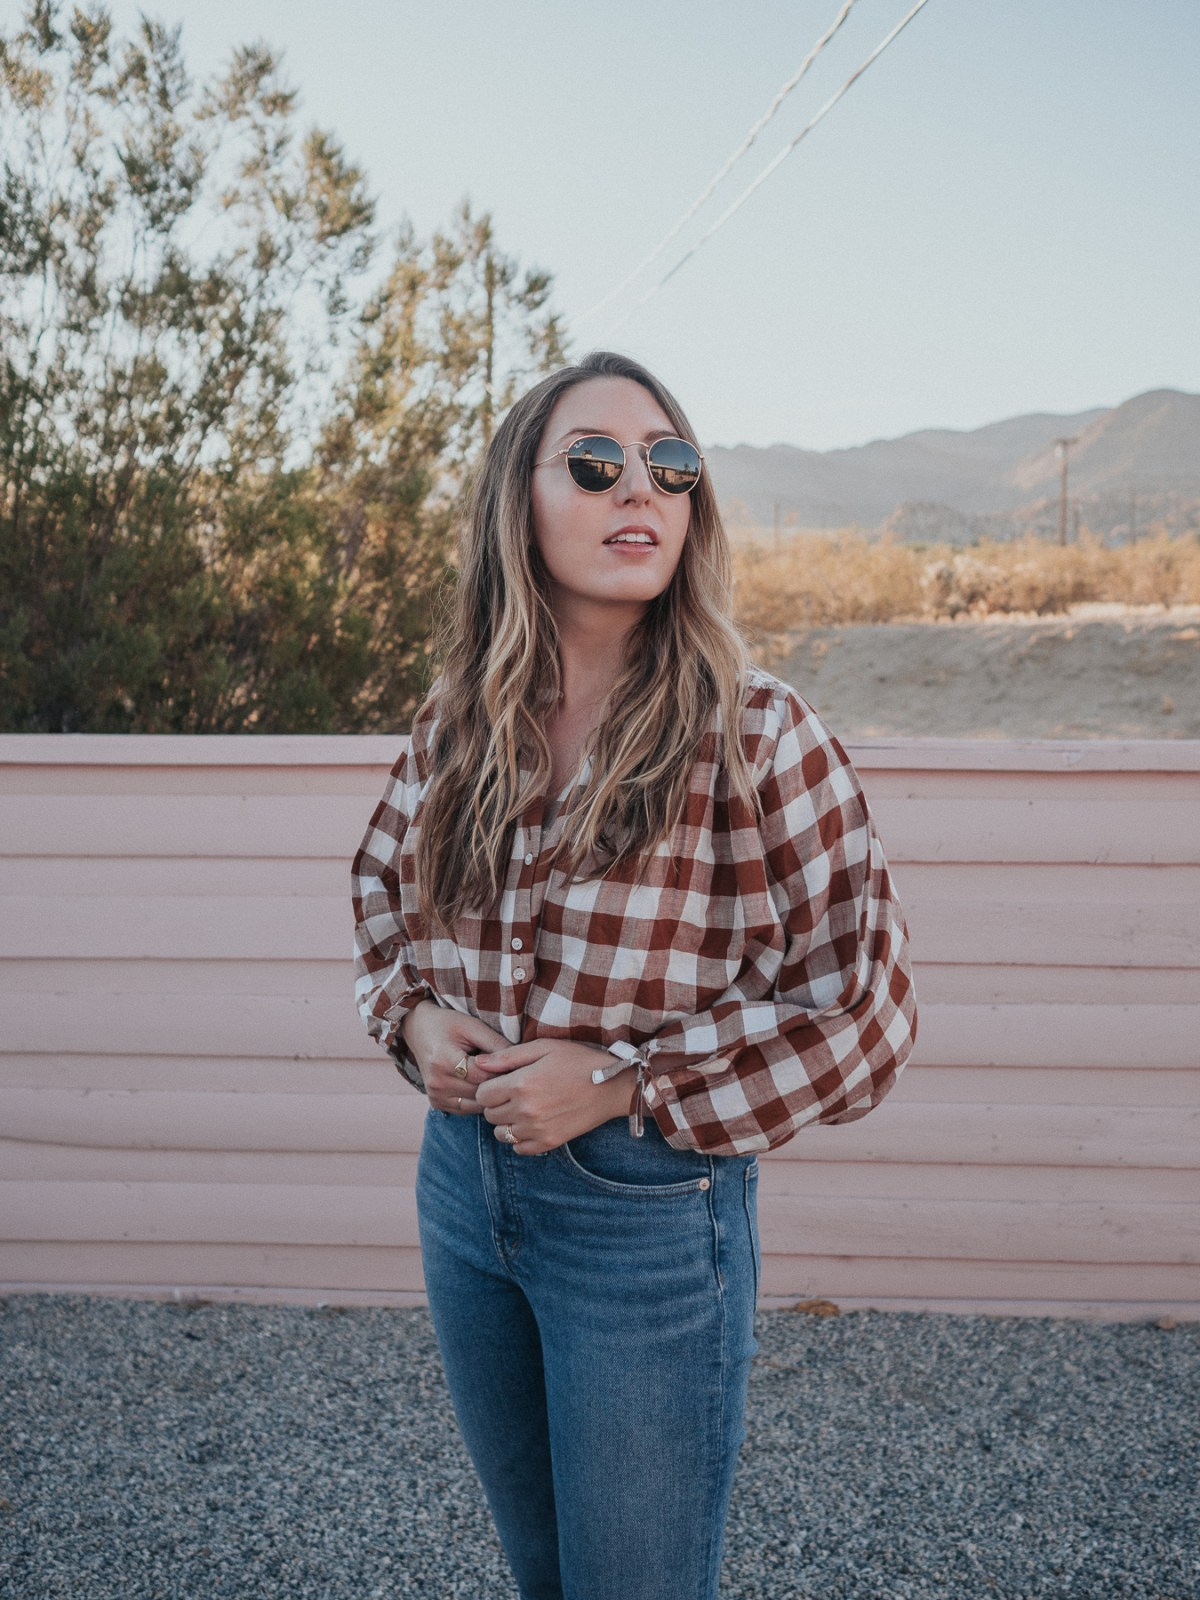 Packing Light: What to Pack for a 10 Day Southern California Roadtrip | featuring sustainable, timeless pieces to get you through a variety of situations while traveling | W&S